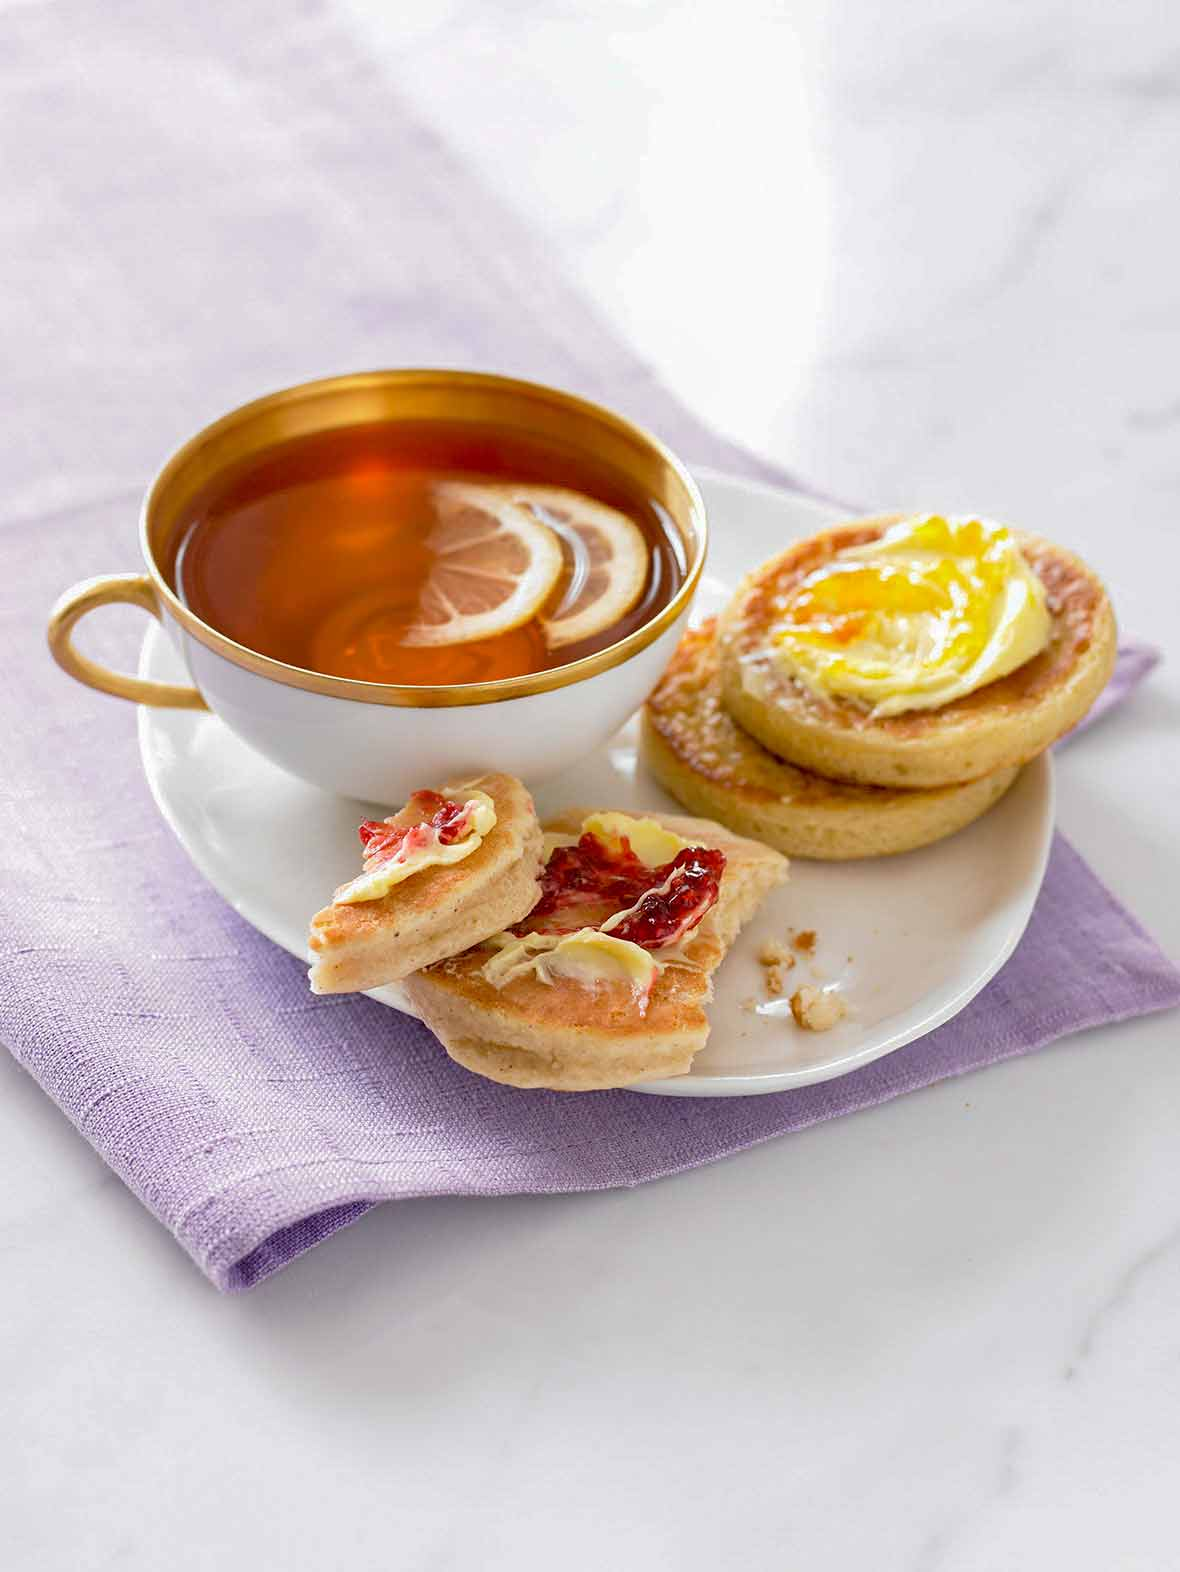 Two English crumpets, one with butter and jam, one with butter and marmalade, on a plate, with a cup of tea nearby